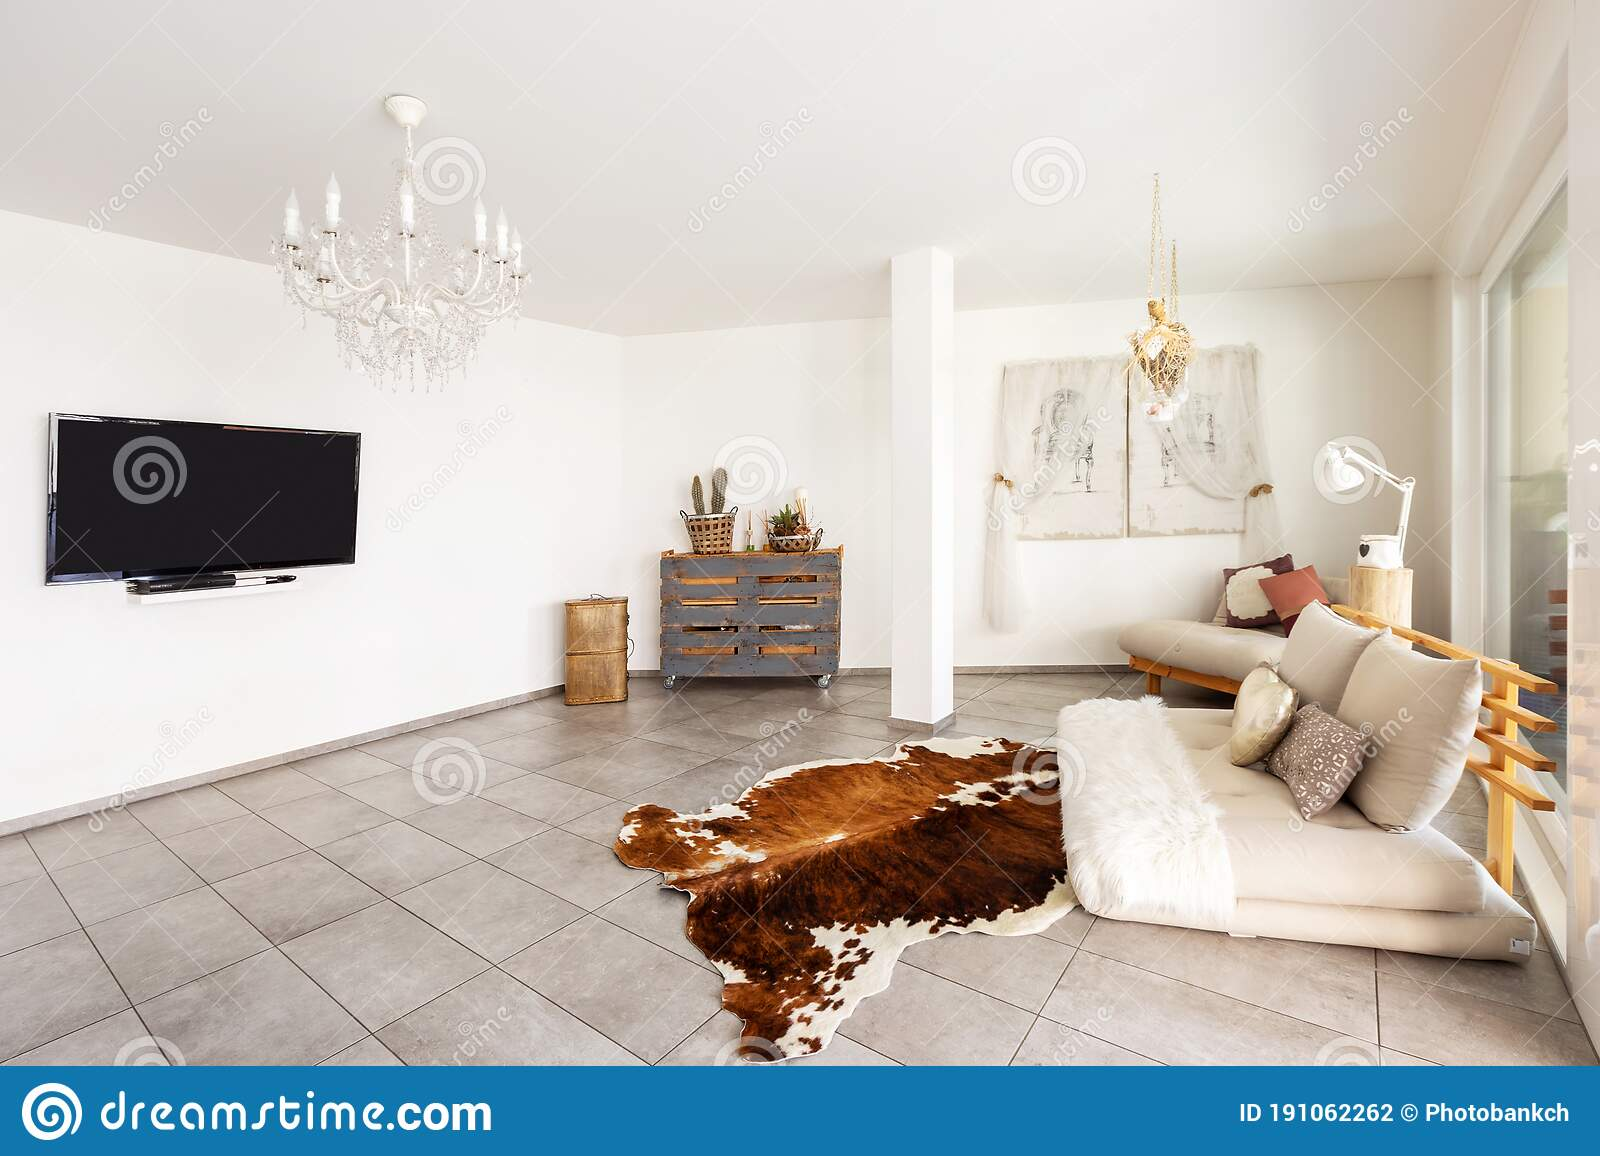 Modern Living Room With Marble Tiles White Walls And Stylish Furnishings Stock Photo Image Of Furniture Glamour 191062262